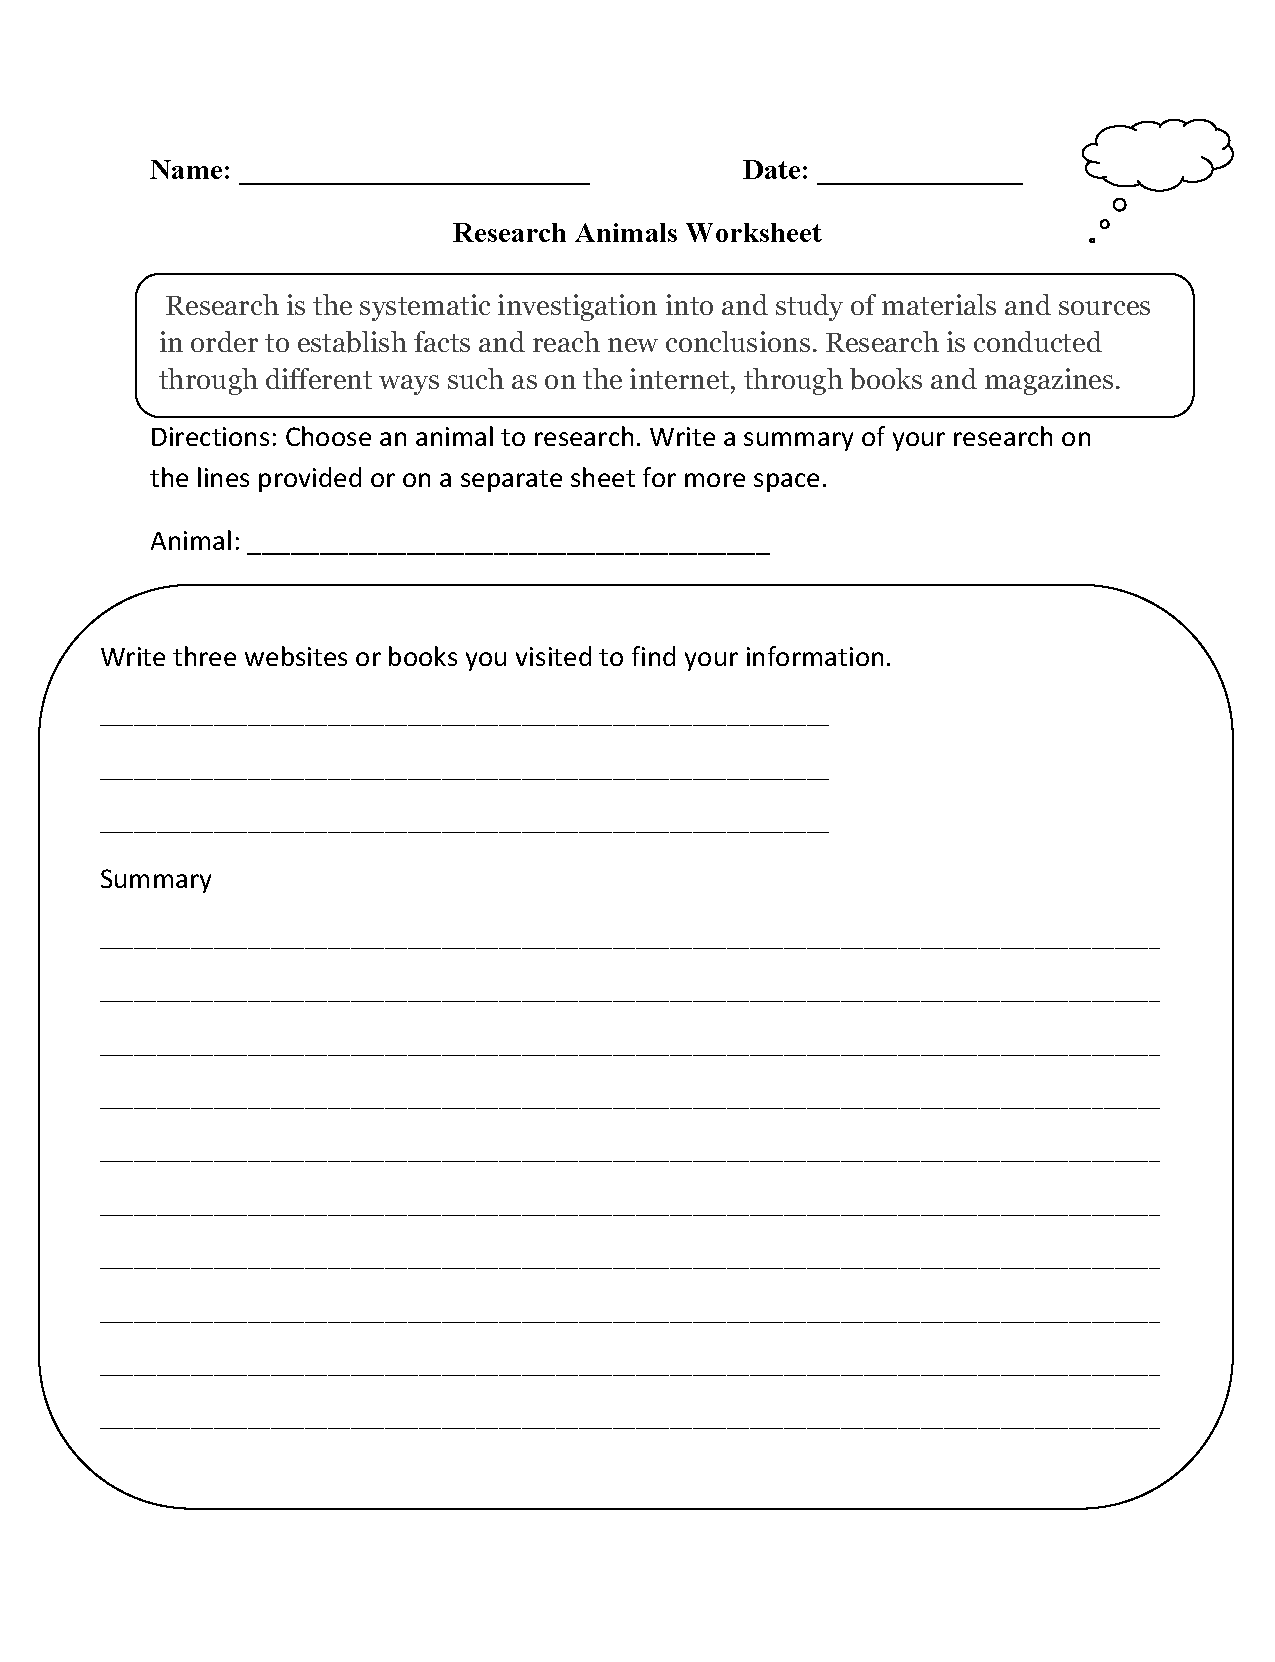 Animal Worksheet New 439 Animal Research Worksheet